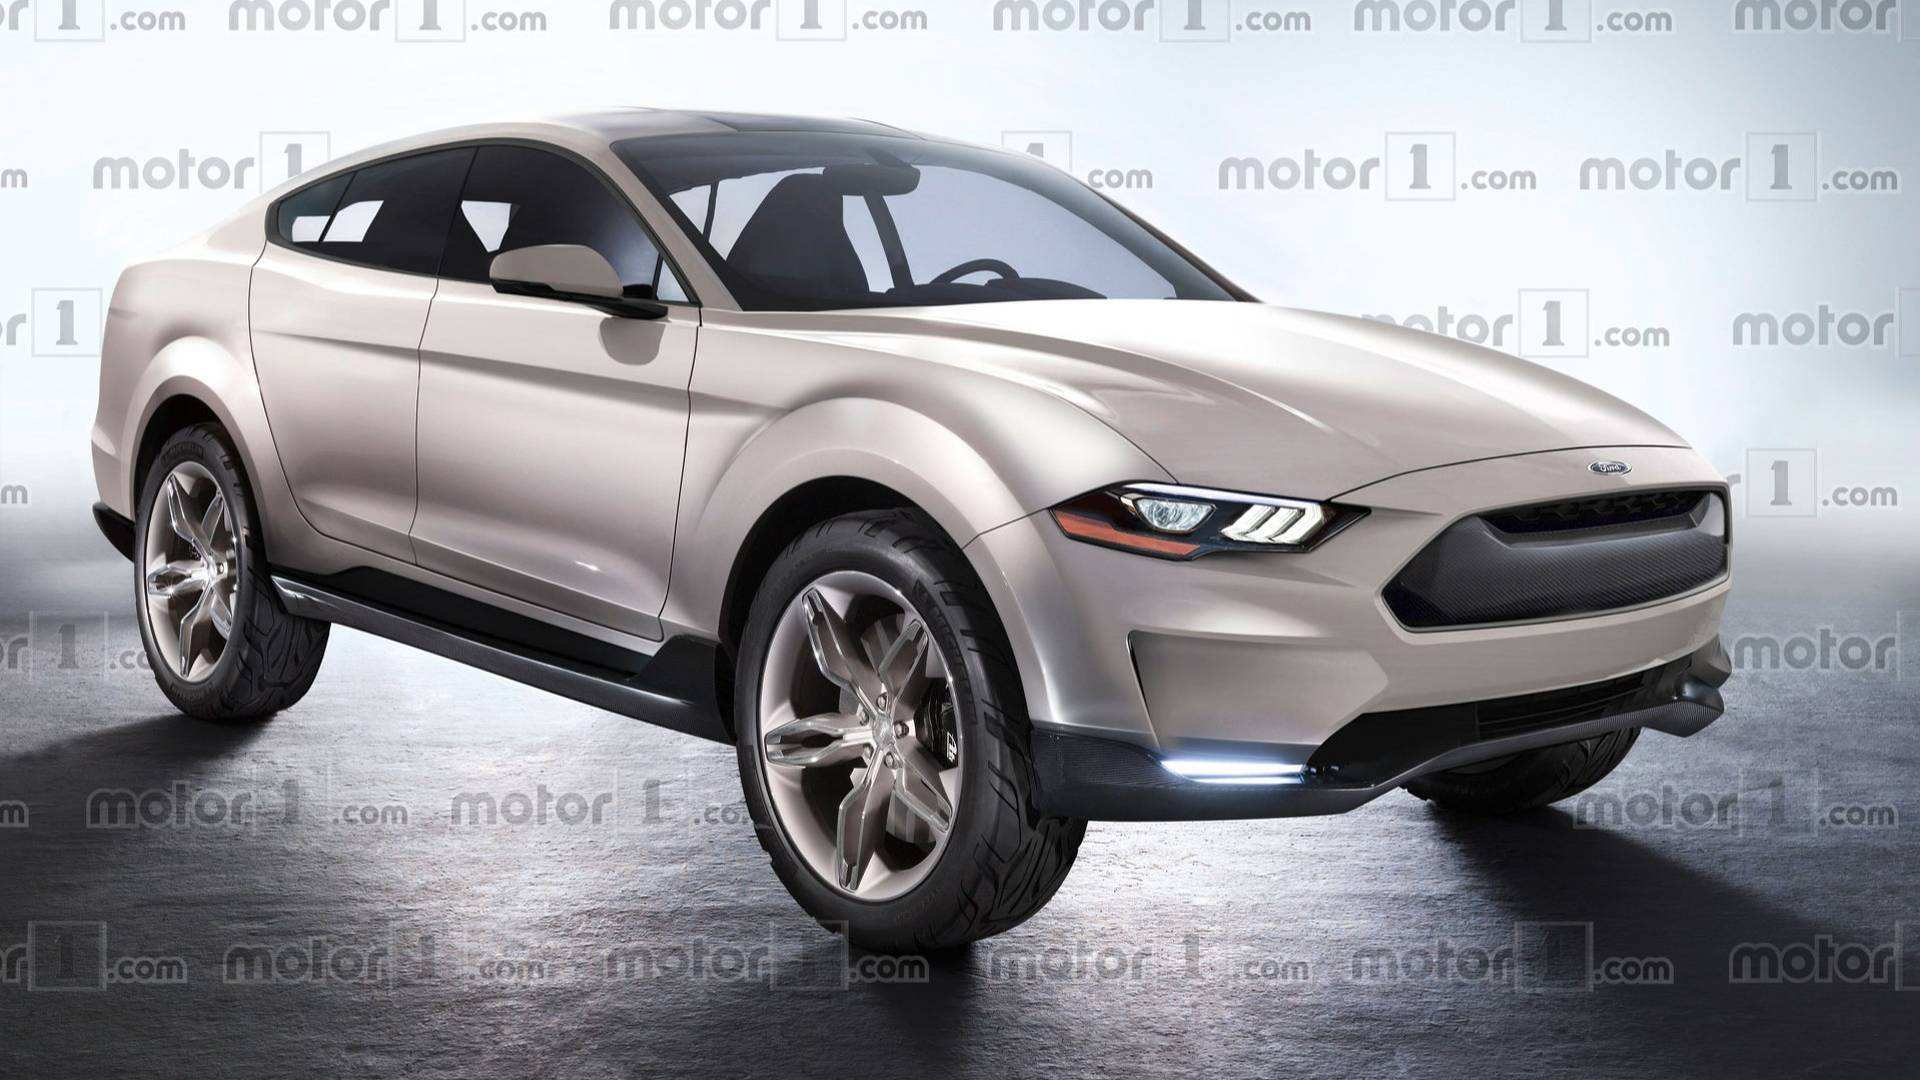 61 Gallery of Ford New Suv 2020 New Review by Ford New Suv 2020